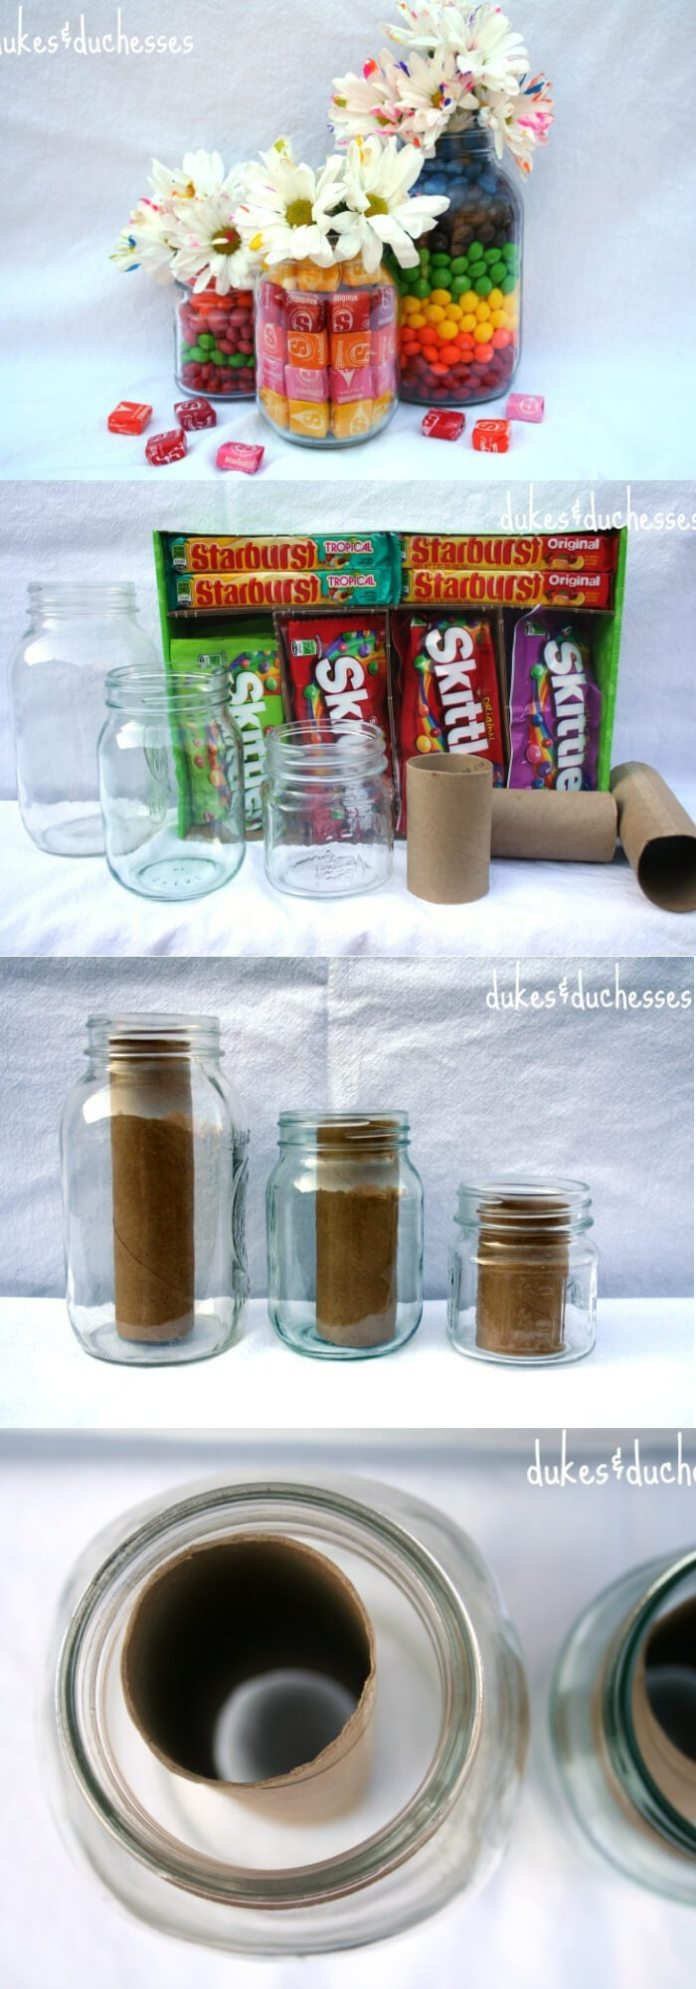 Candy-Filled Mason Jar Vases | DIY Mason Jar Gift Ideas For Valentine's Day | FarmFoodFamily.com